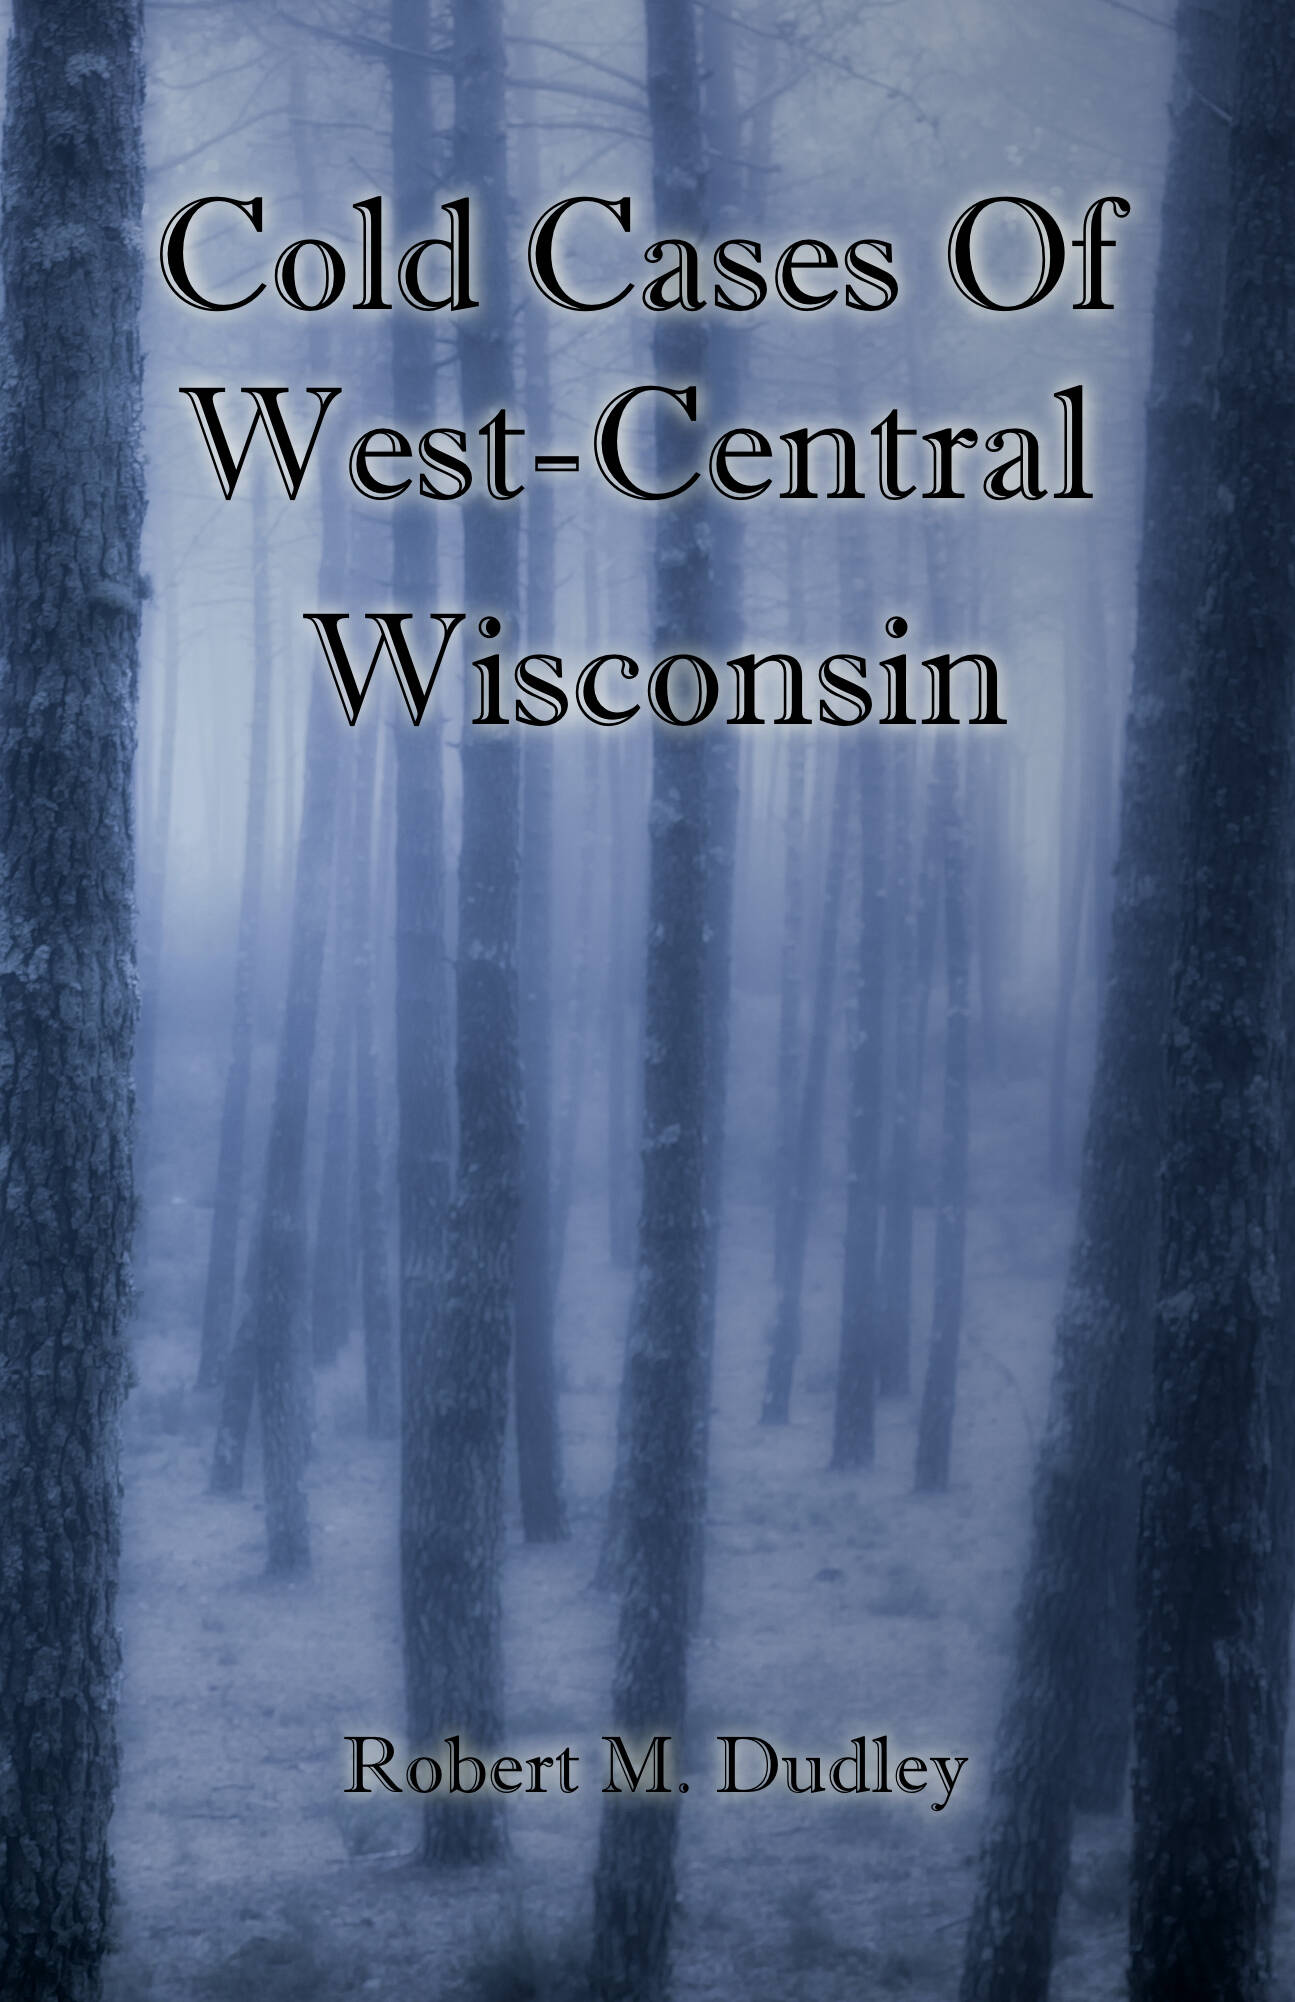 Cold Cases of West - Central Wisconsin - The Volume One...